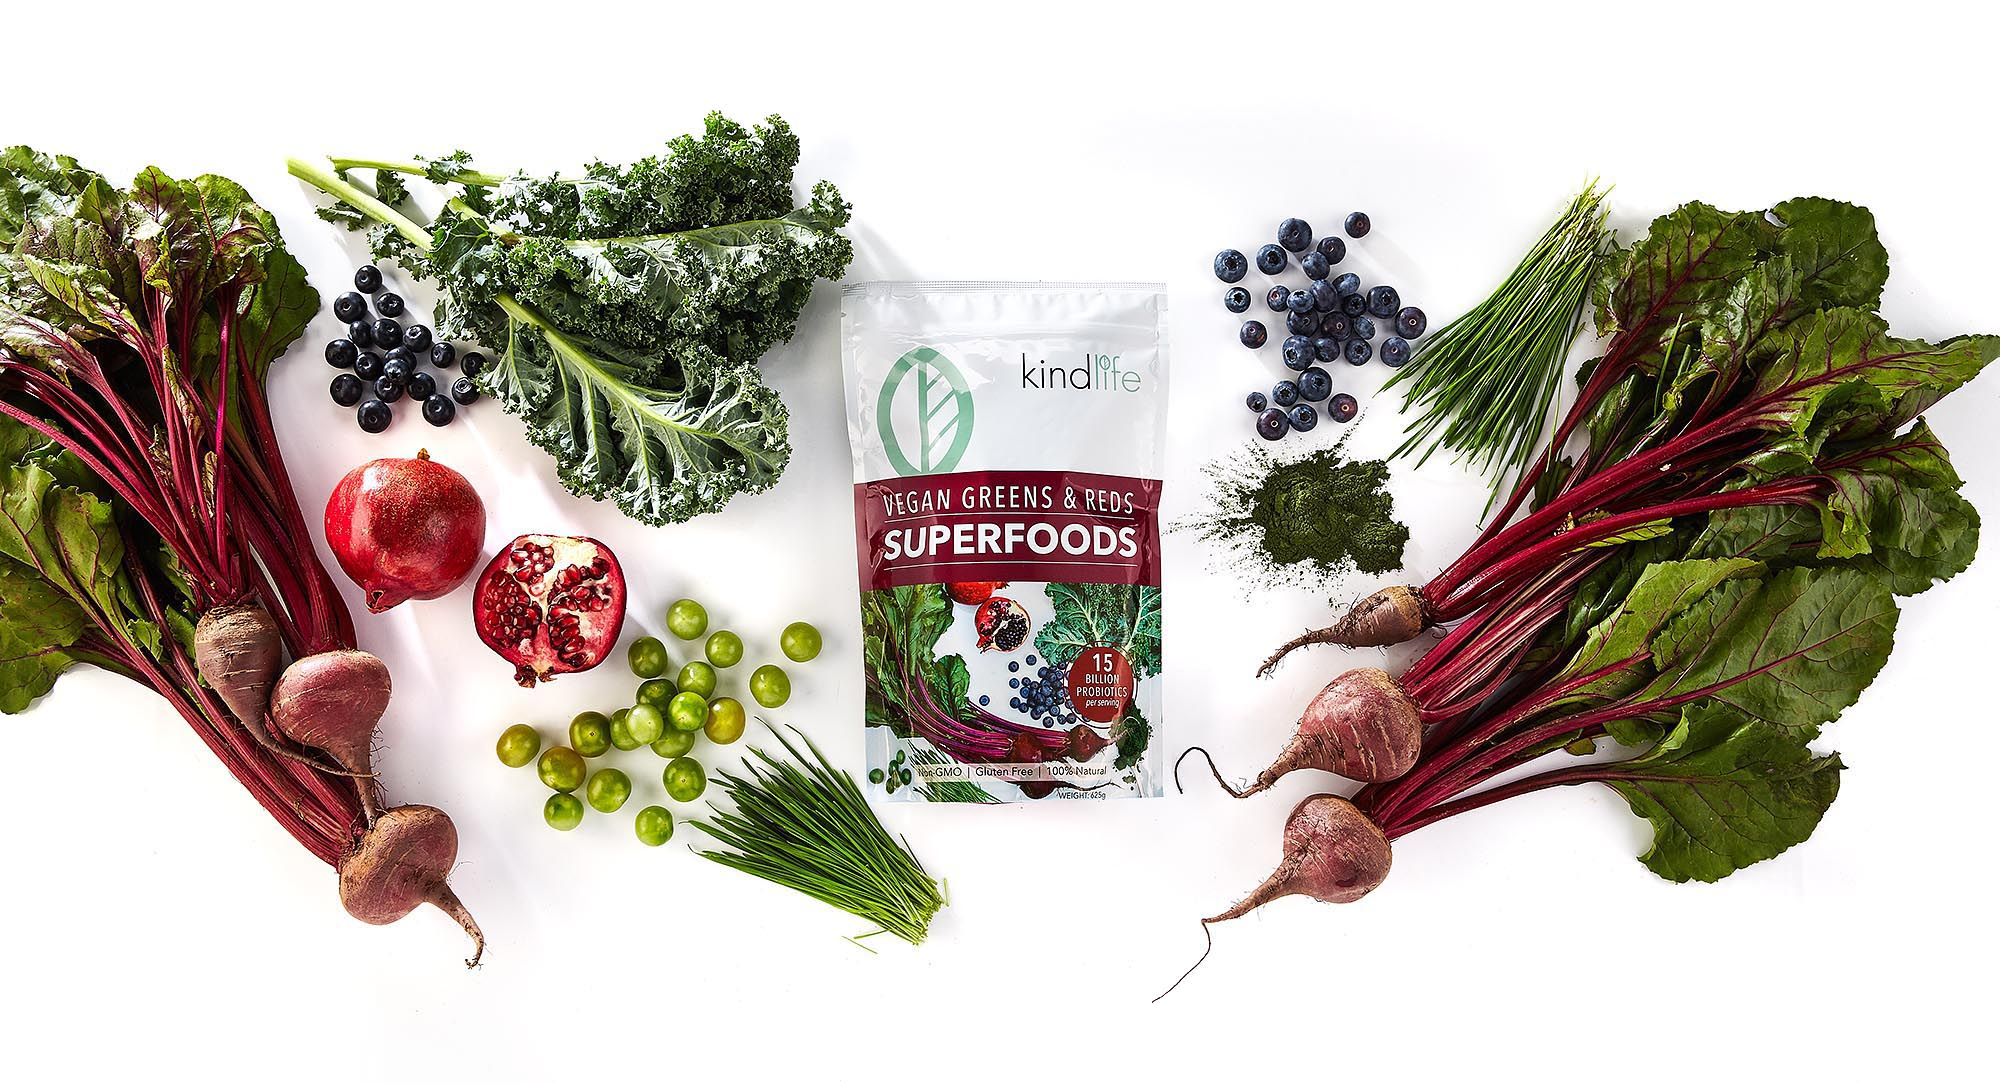 Kind Life Superfoods vegan plant based protein